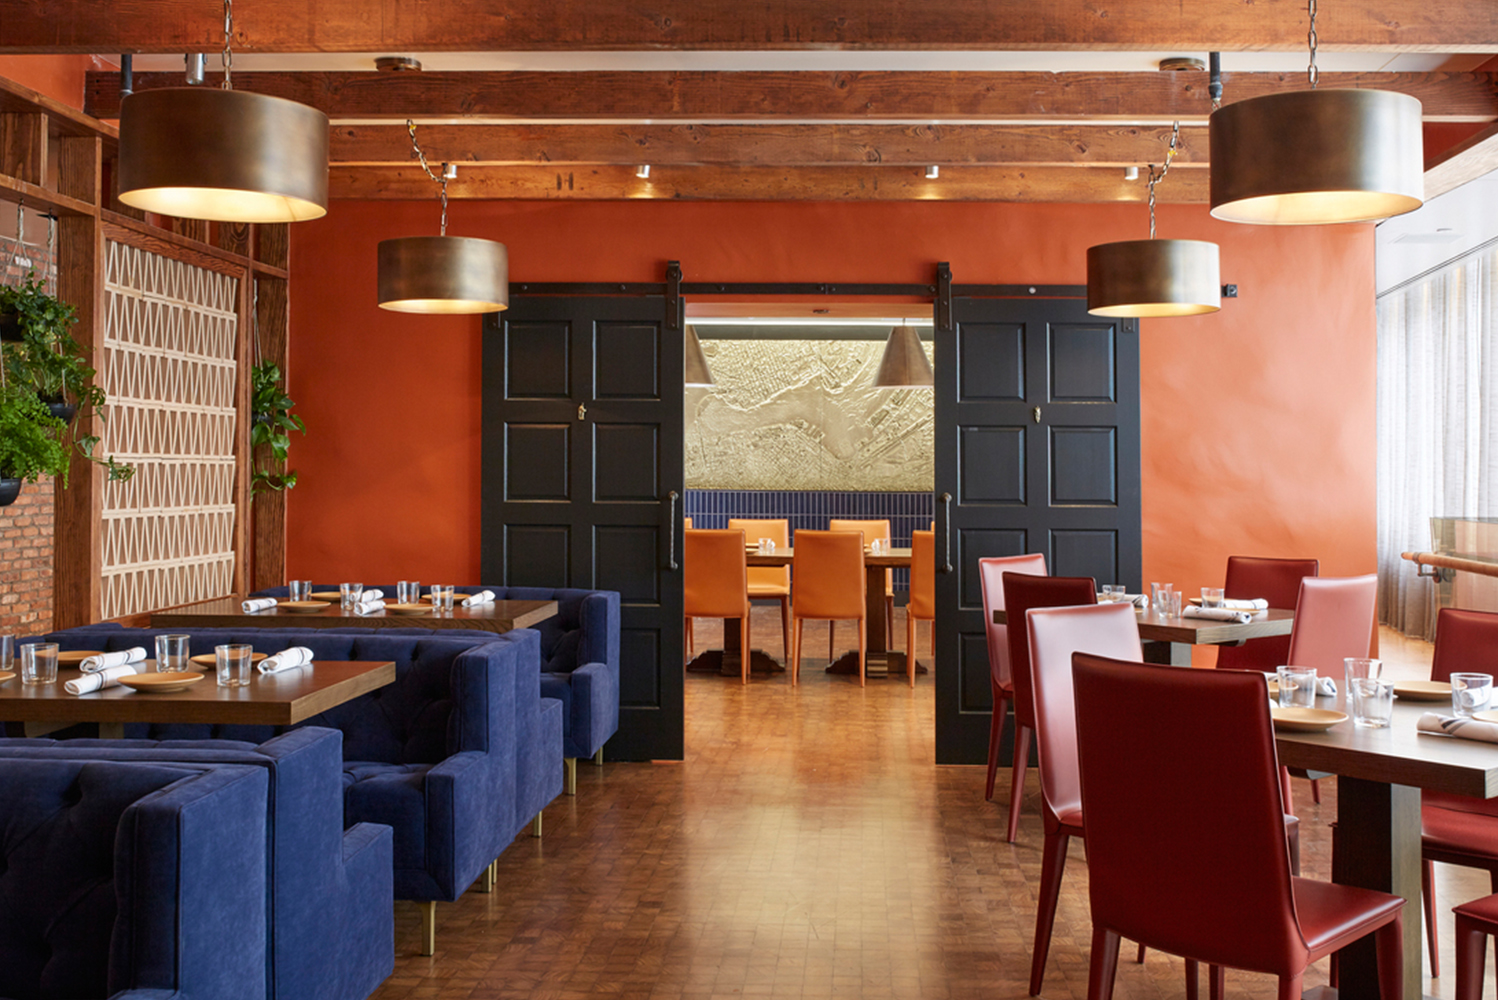 Design firm Ware Malcomb completed the new restaurant, bar and lounge area of the Kimpton Hotel Palomar.